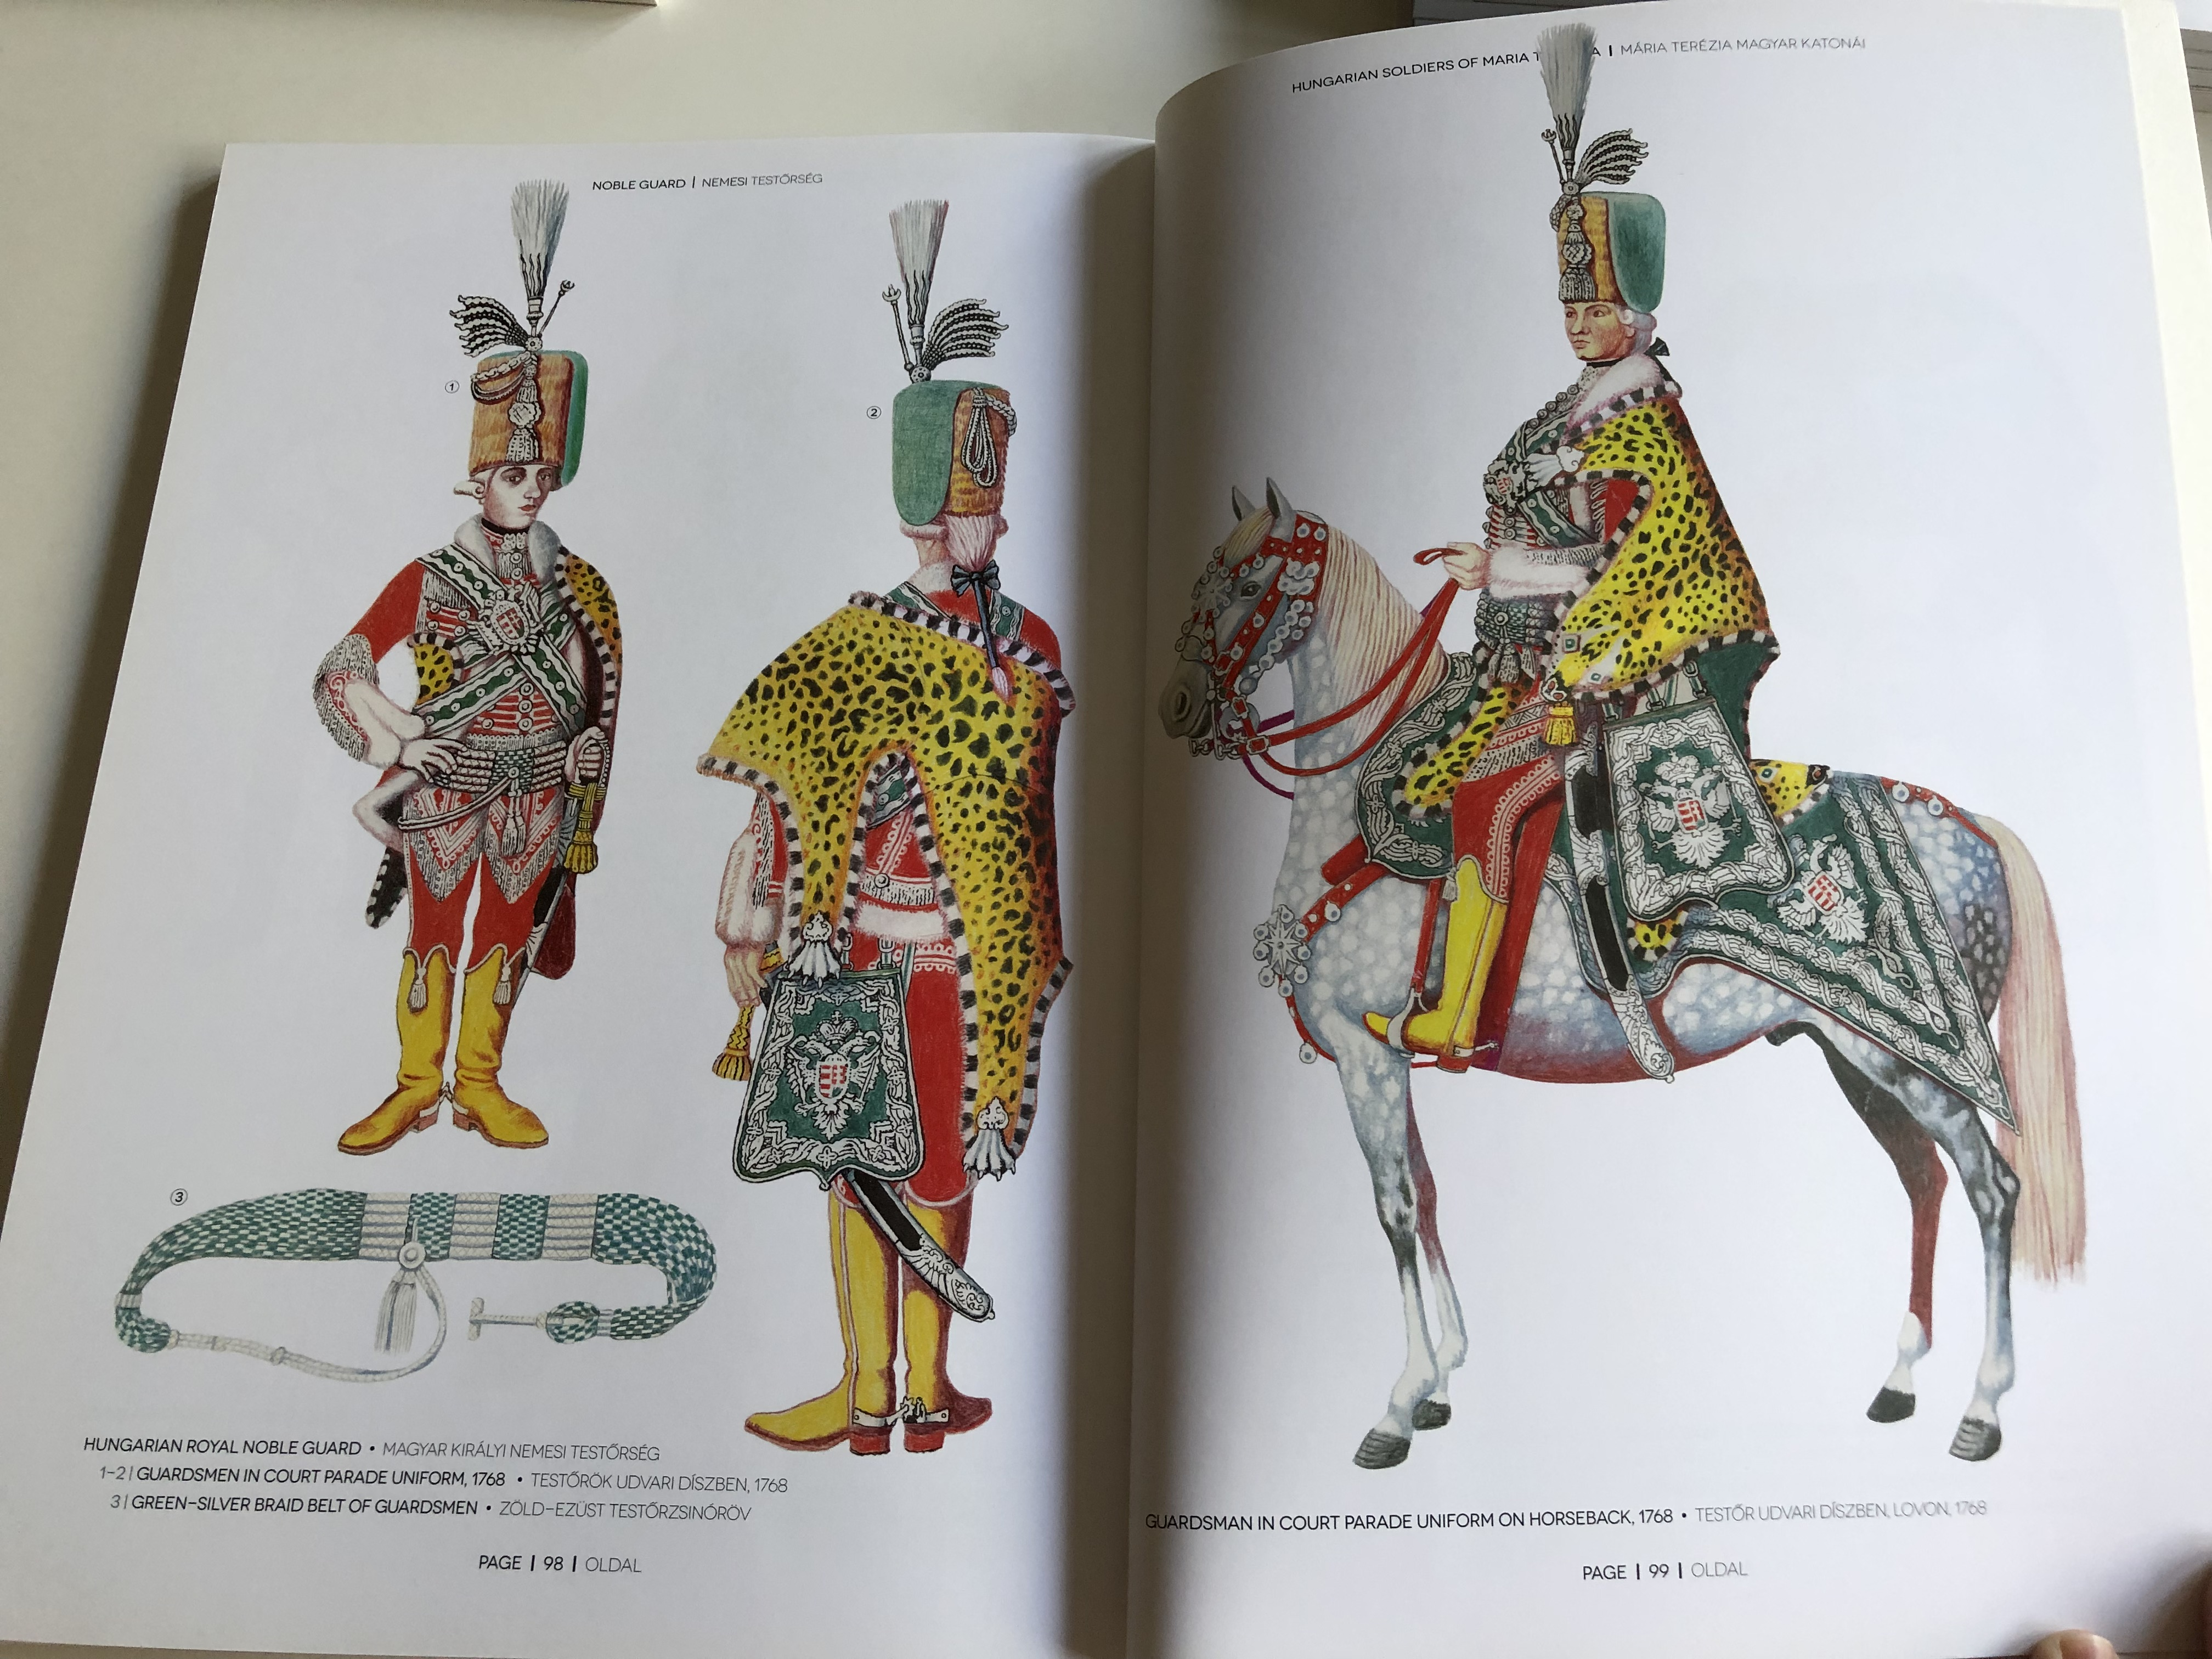 hungarian-soldiers-of-maria-theresa-1740-1768-by-gy-z-somogyi-m-ria-ter-zia-magyar-katon-i-1740-1768-a-millenium-in-the-military-egy-ezred-v-hadban-paperback-2016-hm-zr-nyi-8-.jpg